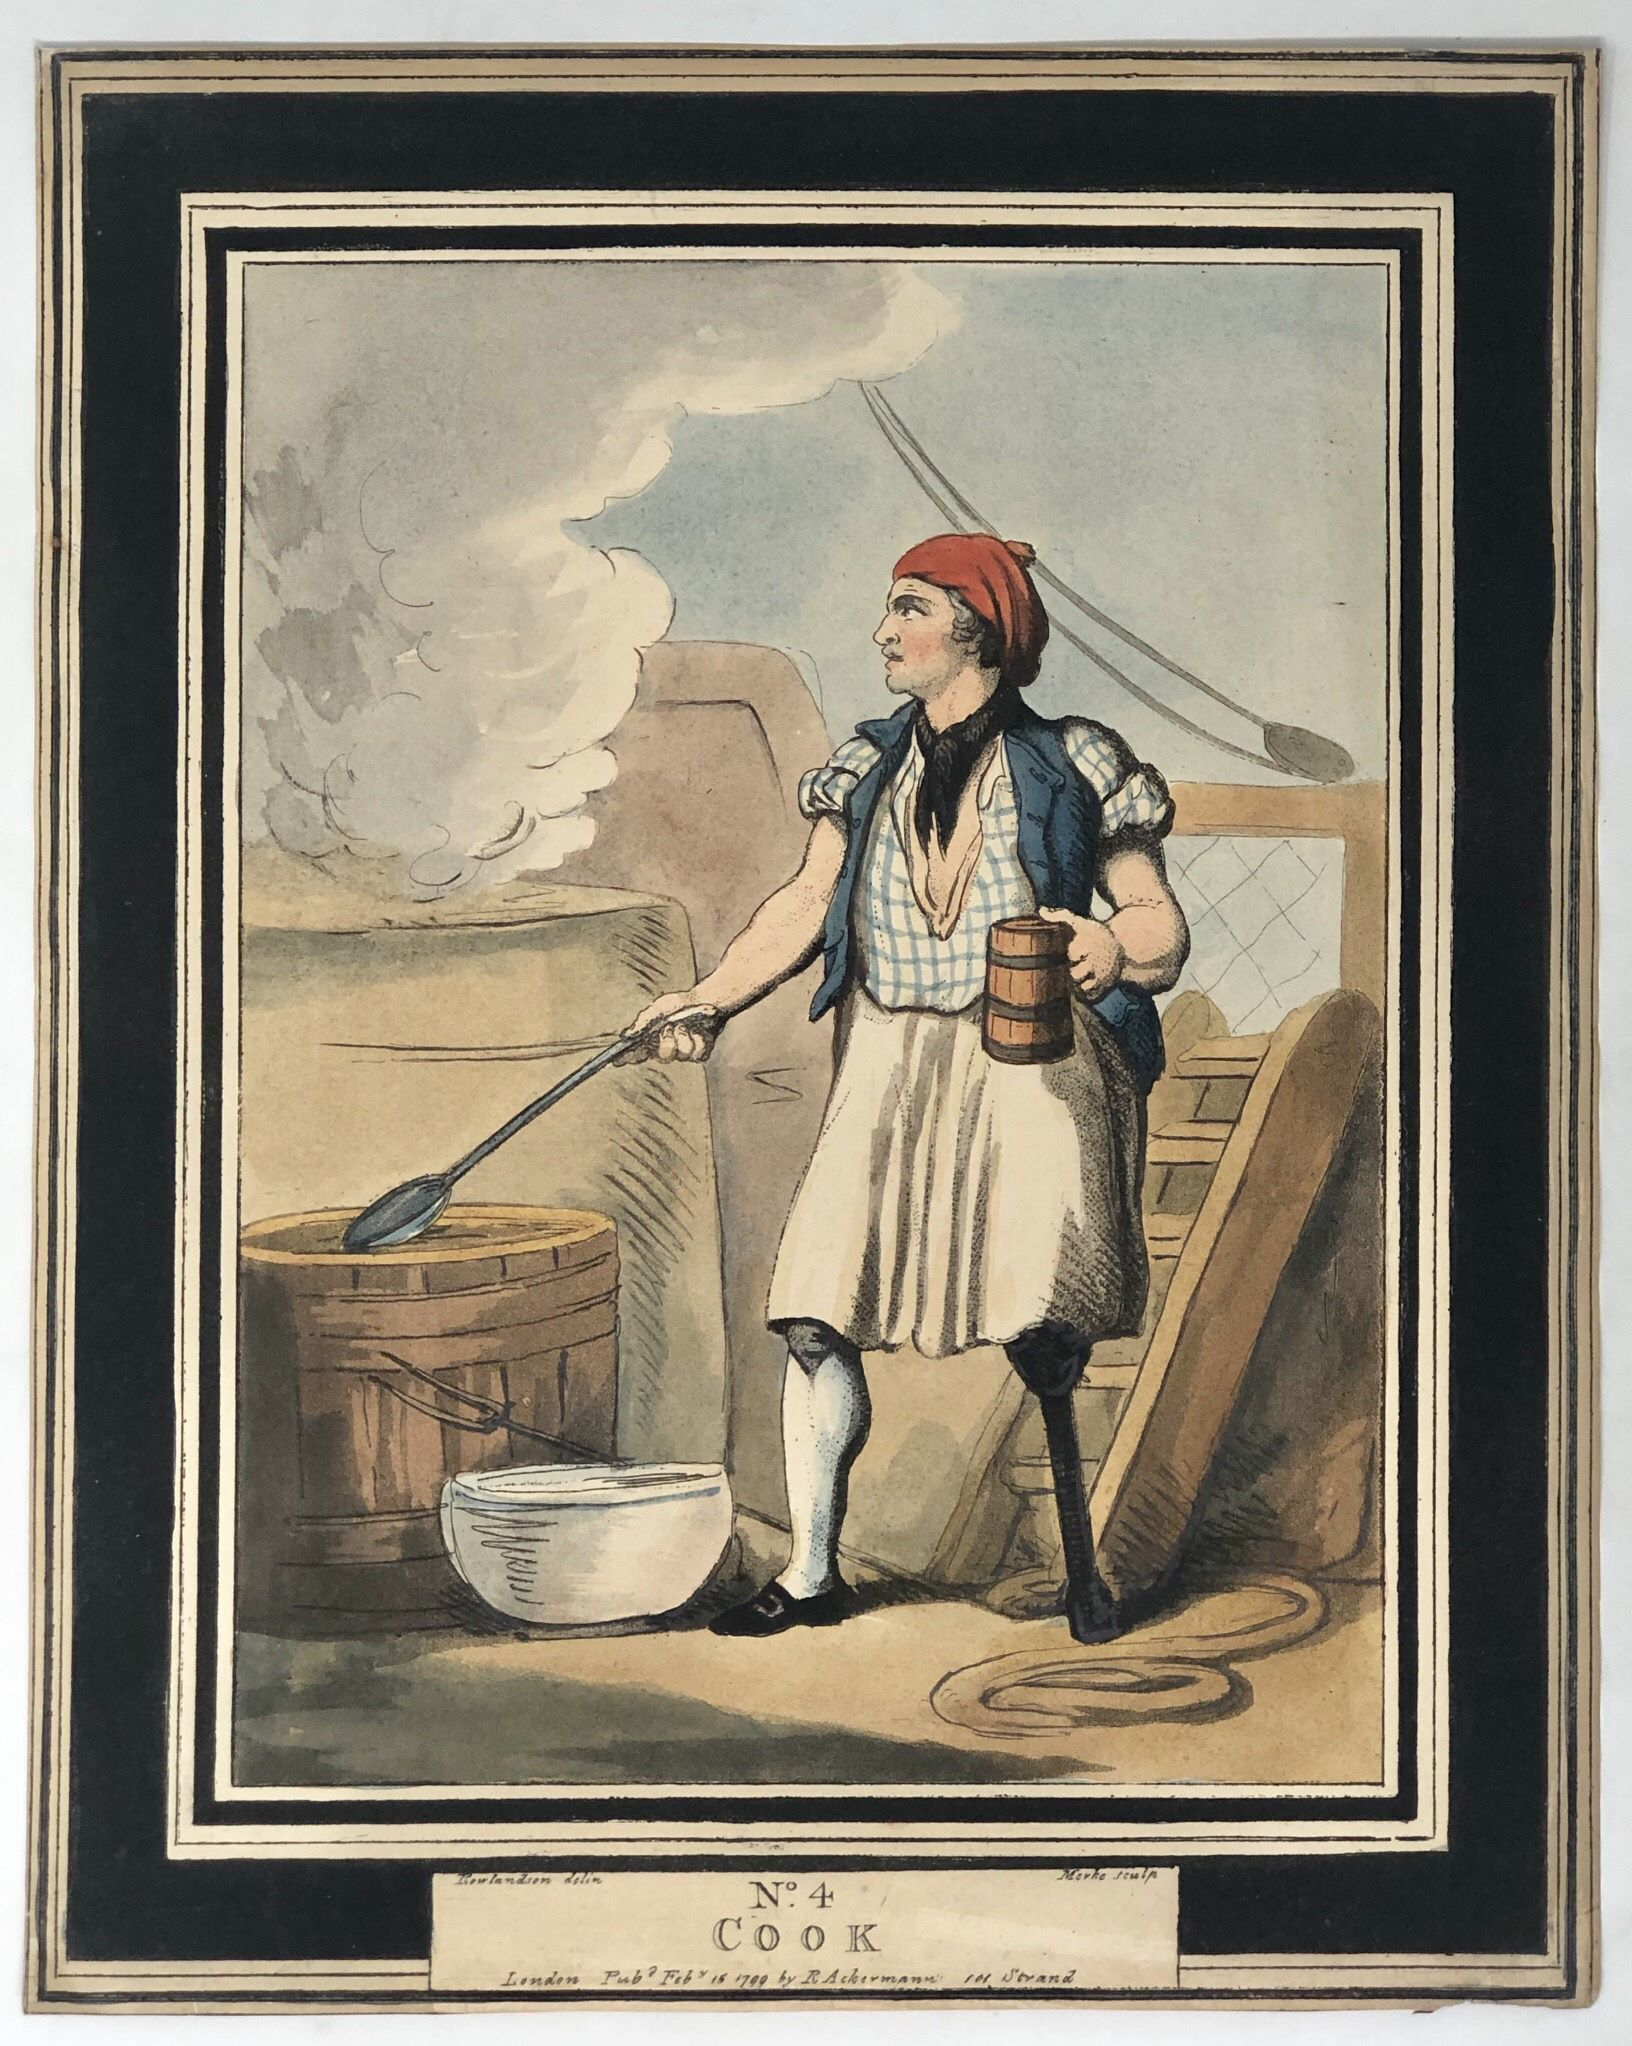 Naval Costumes] Cook: ROWLANDSON